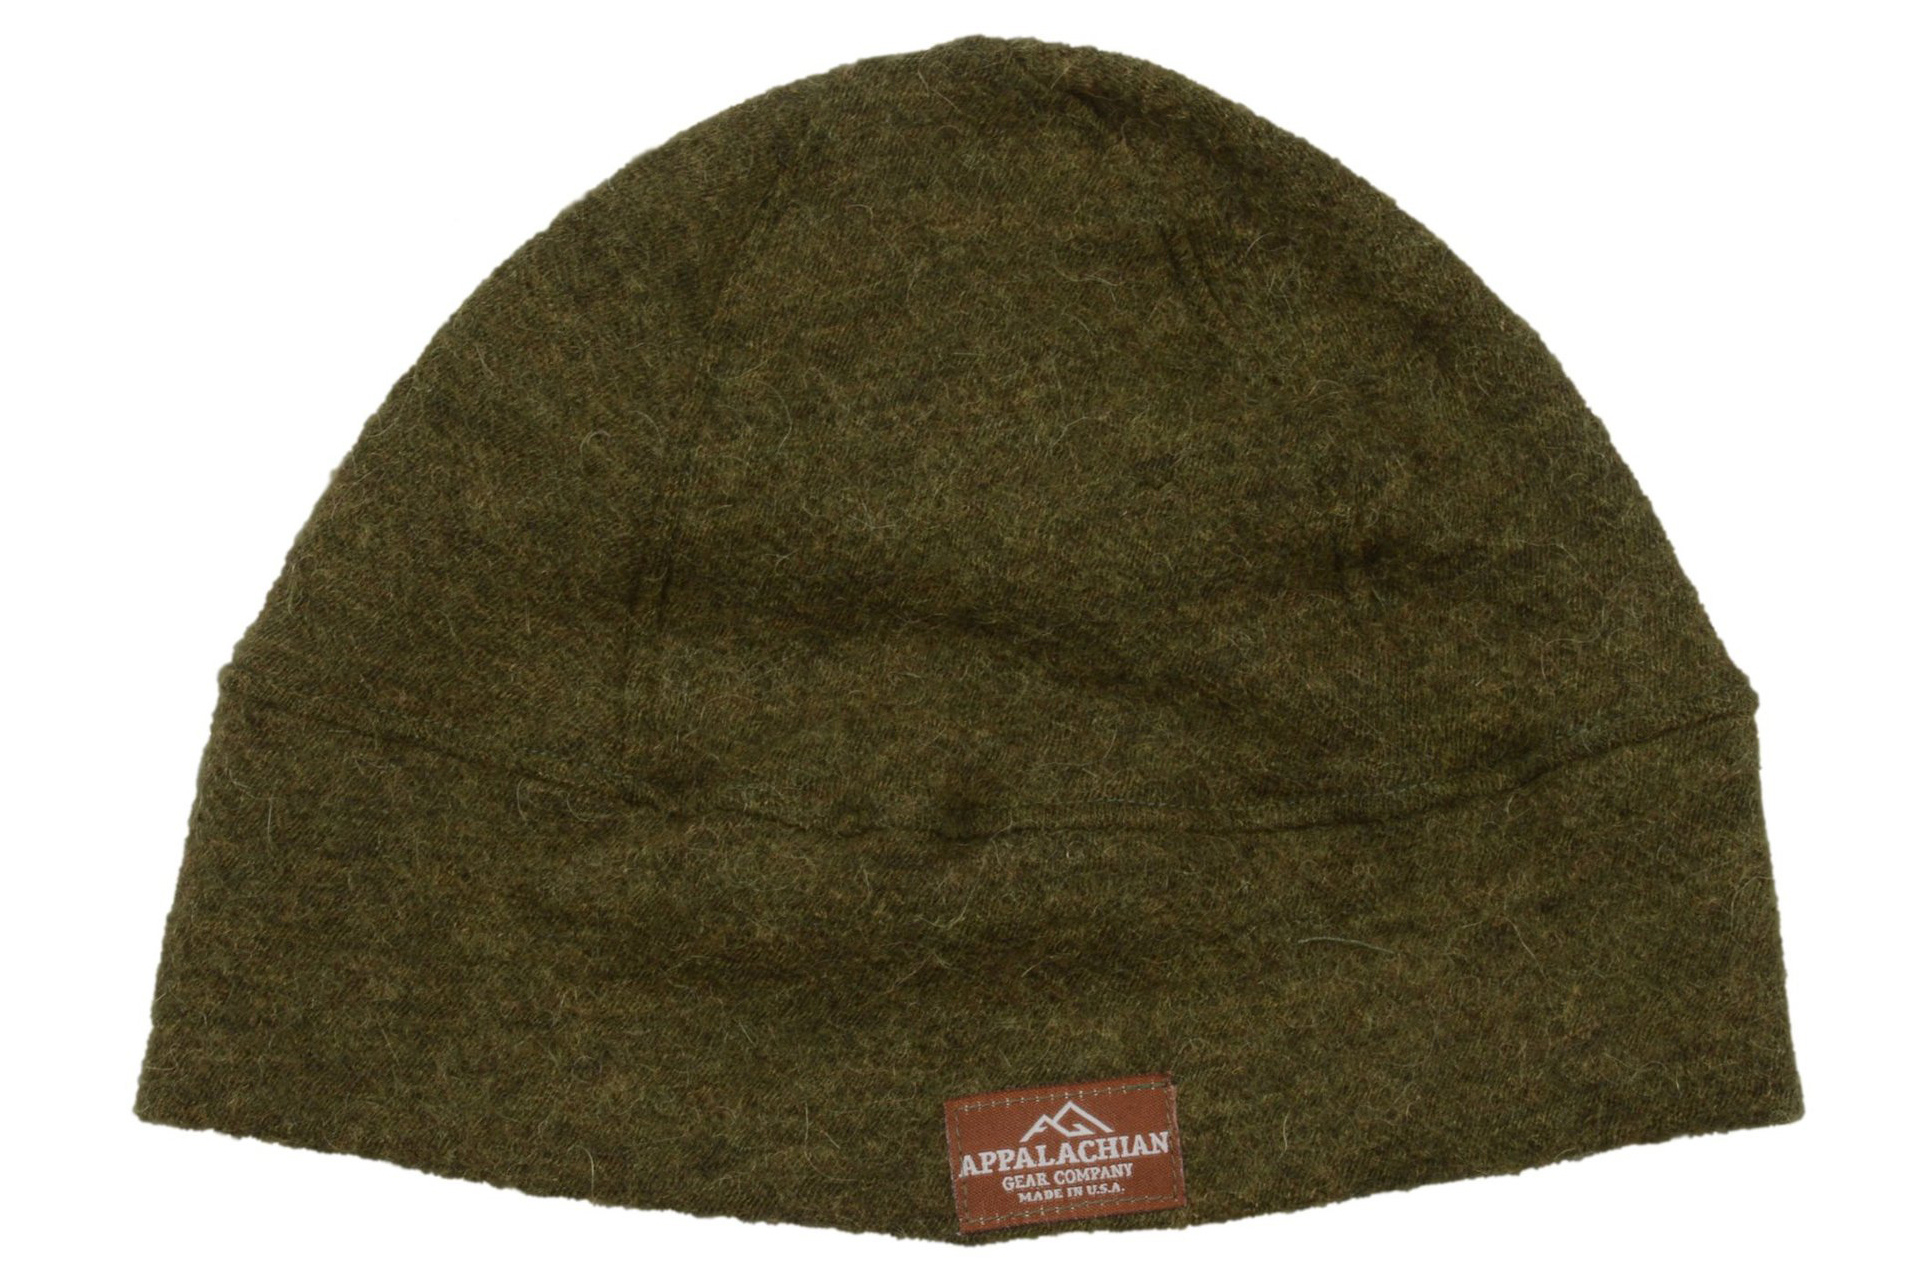 Appalachian Gear Company All-Paca Fleece Beanie